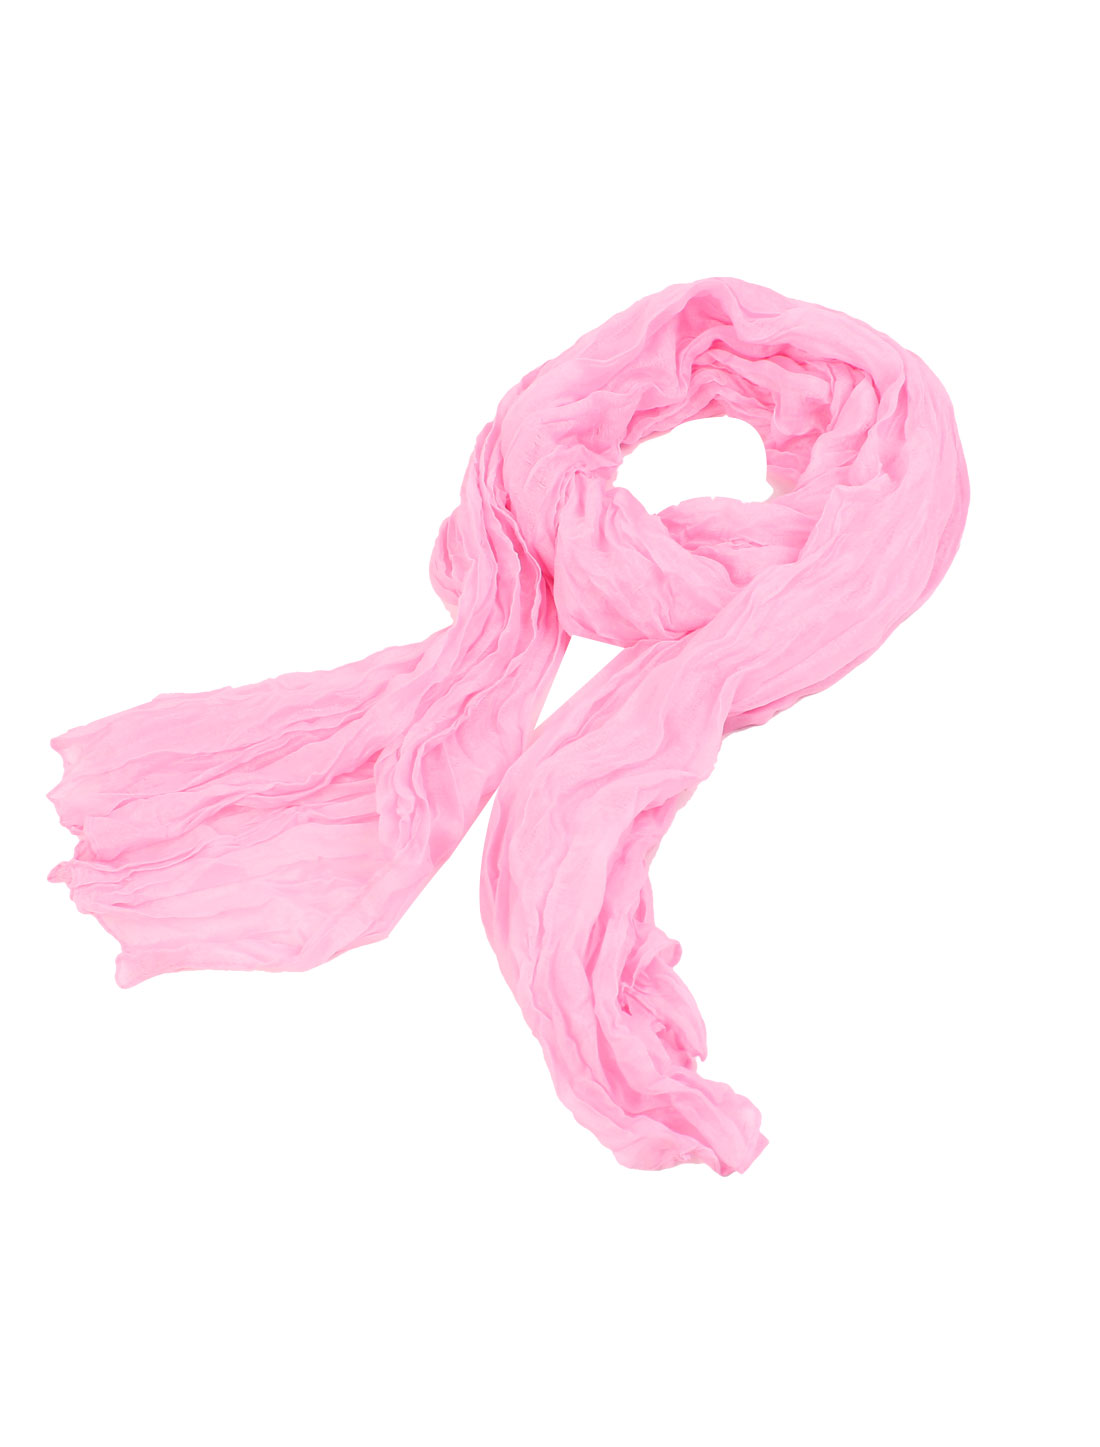 Woman Rectangular Soft Chiffon Warm Shawl Neck Wrap Scarf Pink